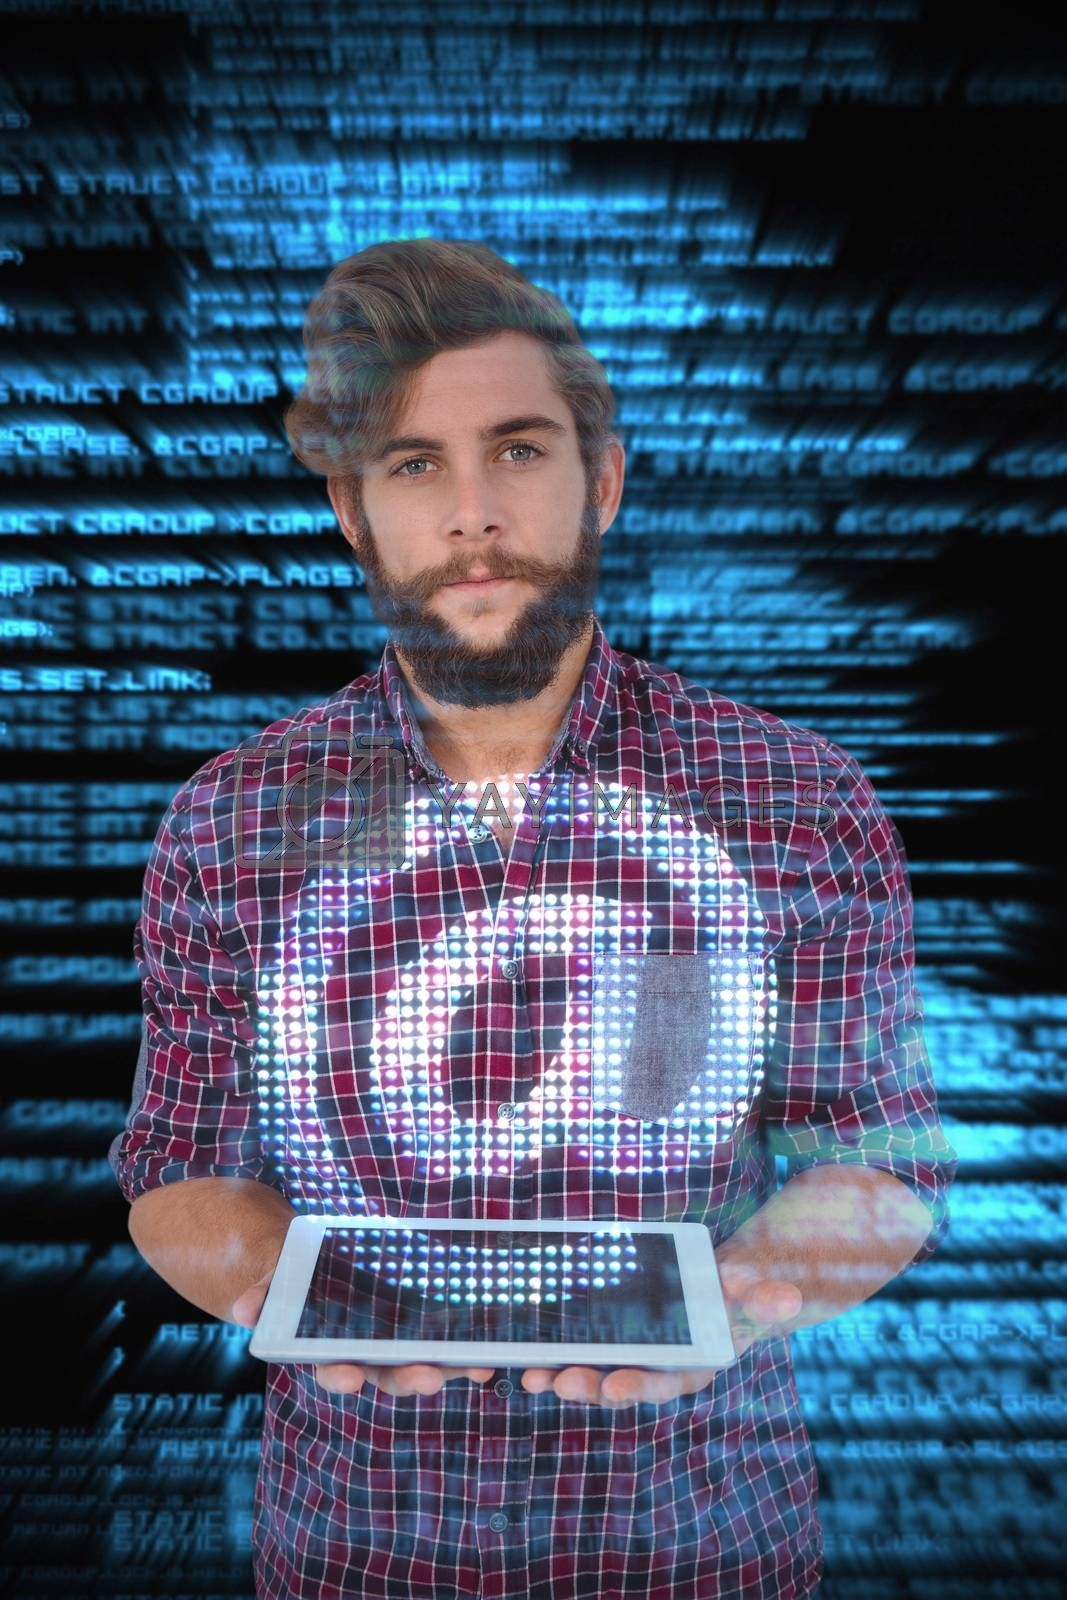 Portrait of hipster holding digital tablet against shiny blue coding on black background